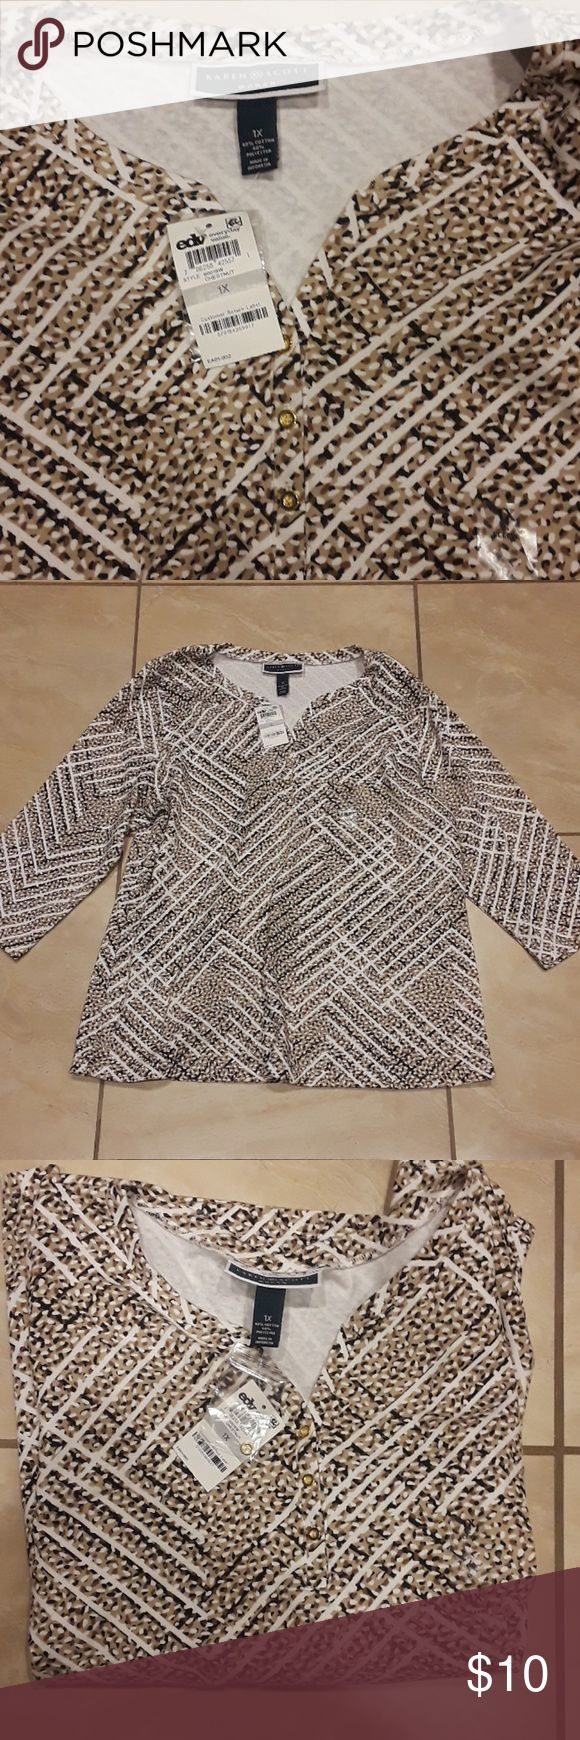 BEAUTIFUL KAREN SCOTT WOMEN TOP BRAND NEW TAGS BEAUTIFUL KAREN SCOTT WOMEN TOP BRAND NEW WITH TAGS. LIGHT BROWN BLACK AND WHITE DESIGN WITH THREE SMALL GOLD BUTTONS IN THE MIDDLE. CASUAL YET ELEGANT TOP, PERFECT FOR THE OFFICE, GOING OUT TO LUNCH OR EVEN SIMPLY GOING TO THE MALL. KEPT IN A PET FREE AND SMOKE FREE HOME - WILLING TO BUNDLE WITH SELECT ITEMS AND PRICE IS ALWAYS NEGOTIABLE! Karen Scott Tops Tees - Long Sleeve